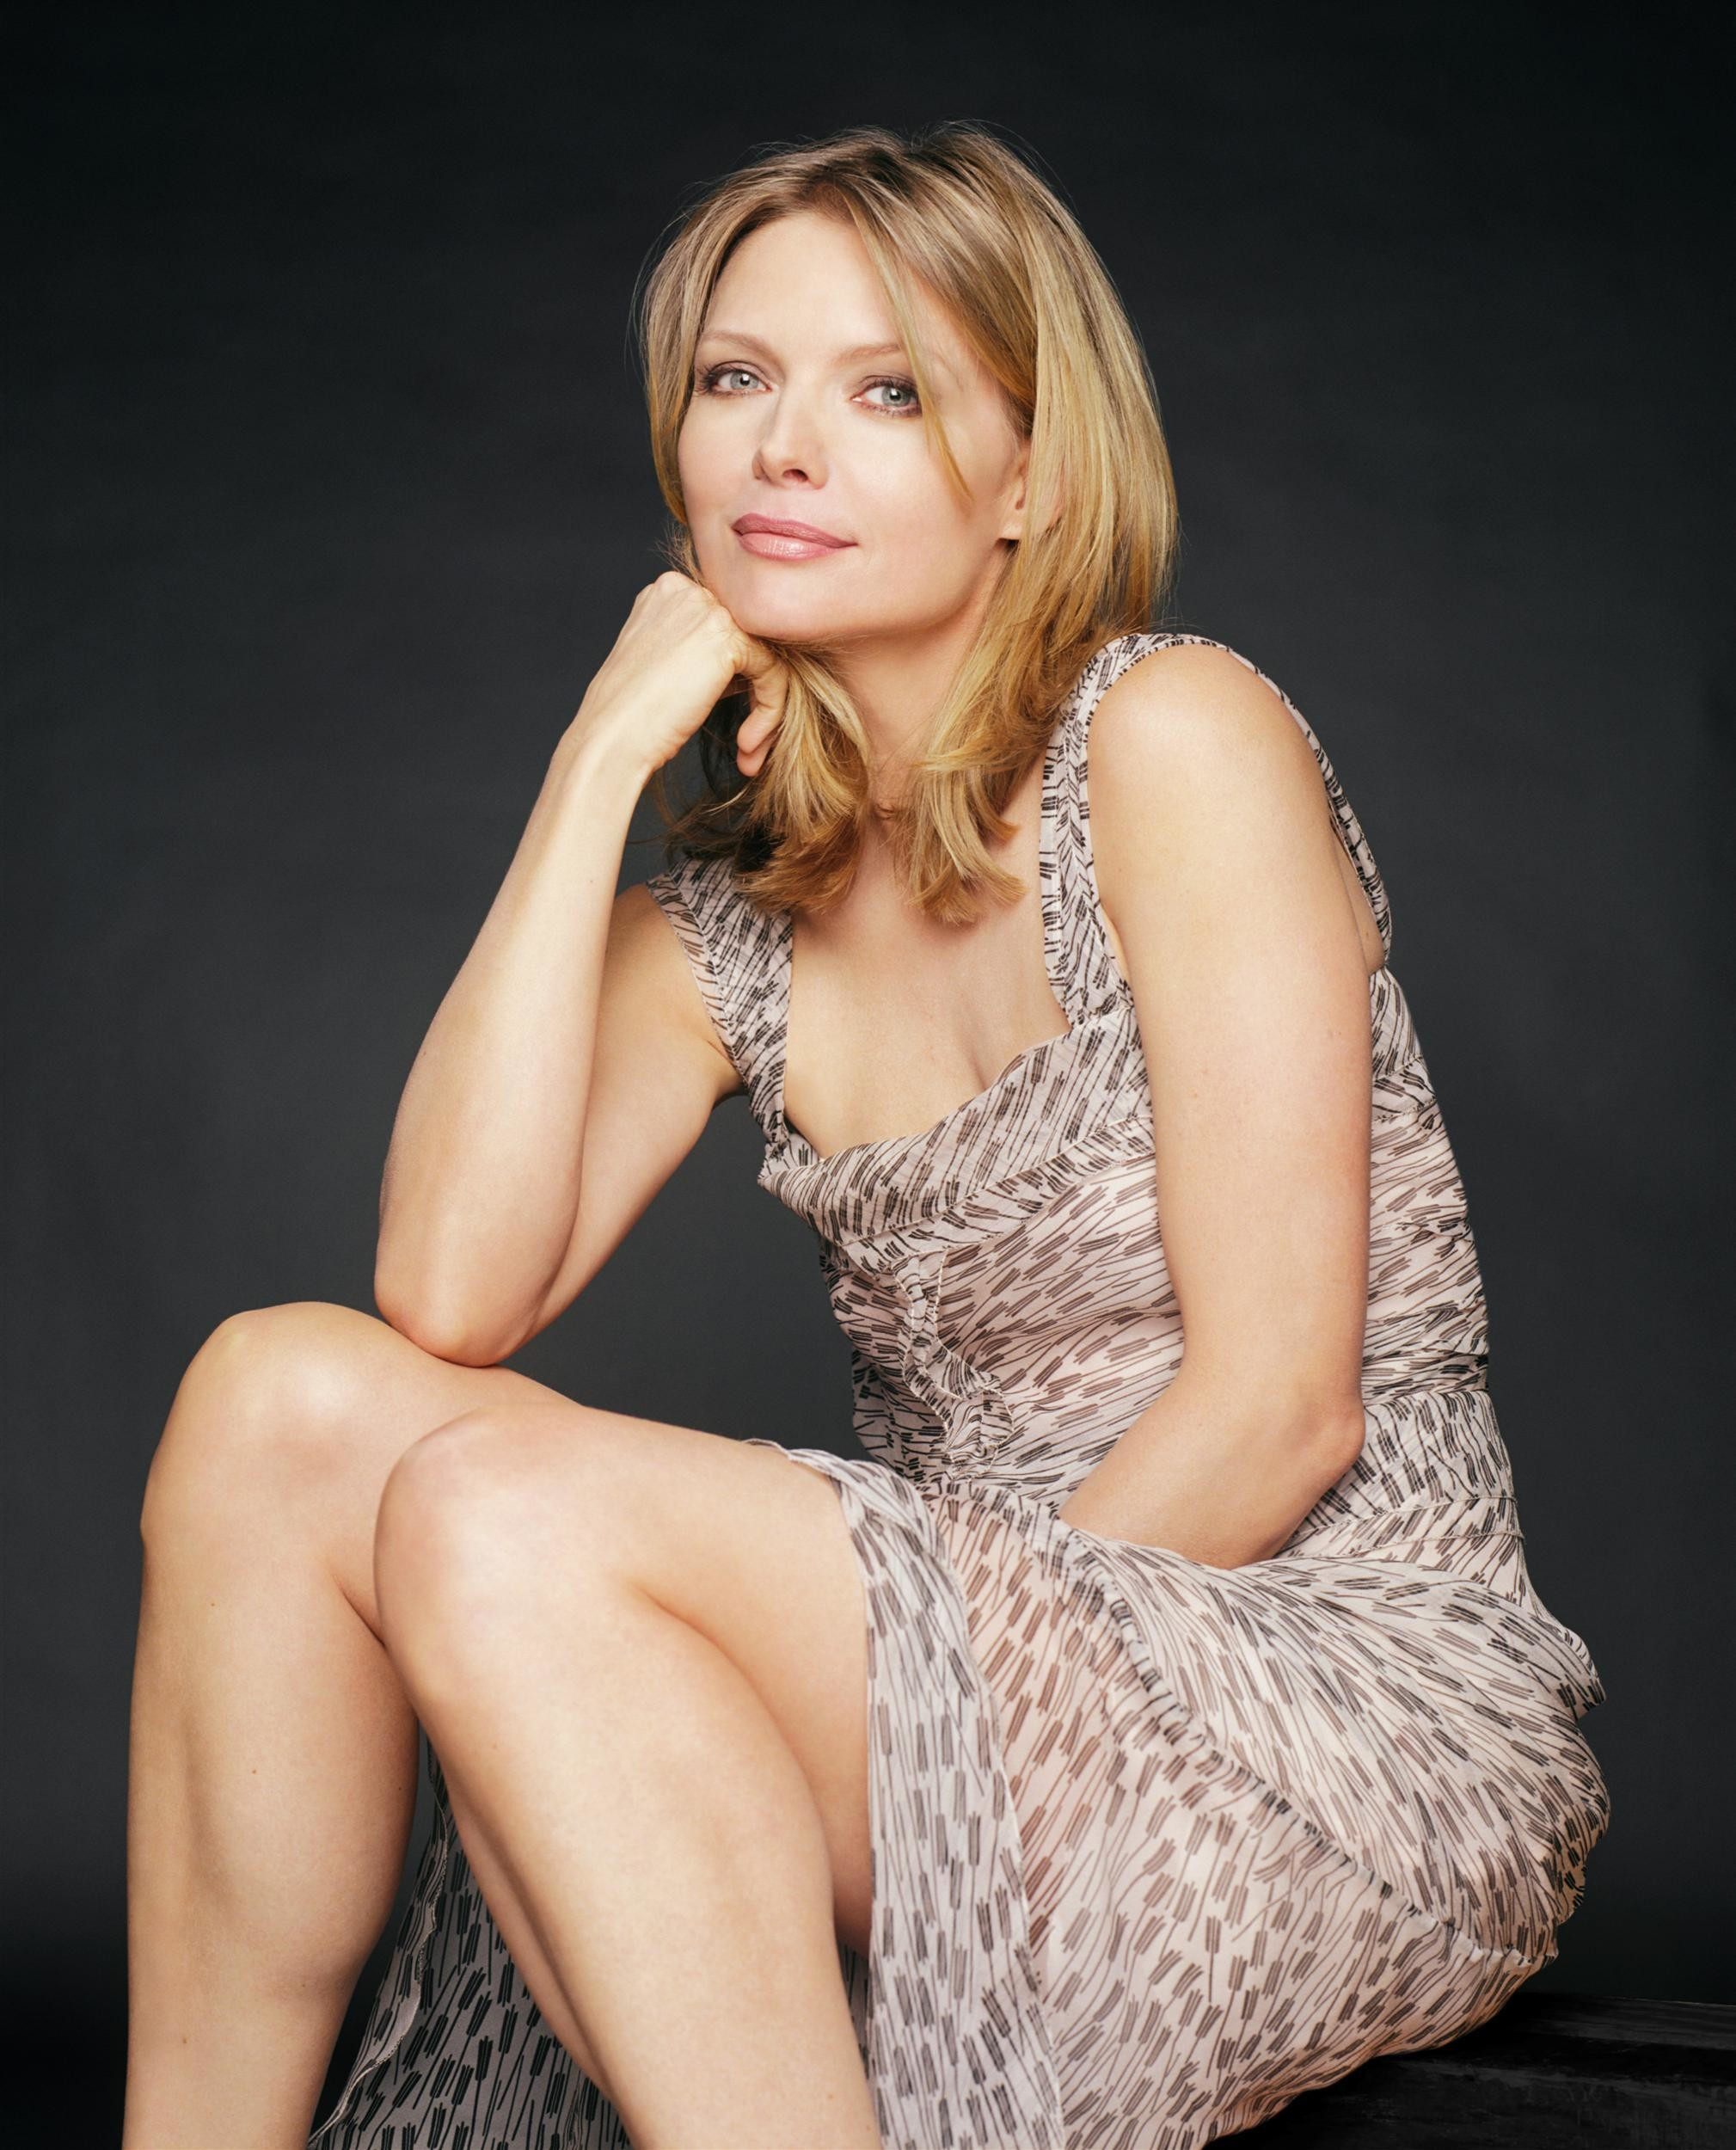 Res: 2019x2500, Photo of Michelle Pfeiffer #251160. Upload date: 2010-04-26. Number of  votes: 10. There are 200 more pics in the Michelle Pfeiffer photo gallery.